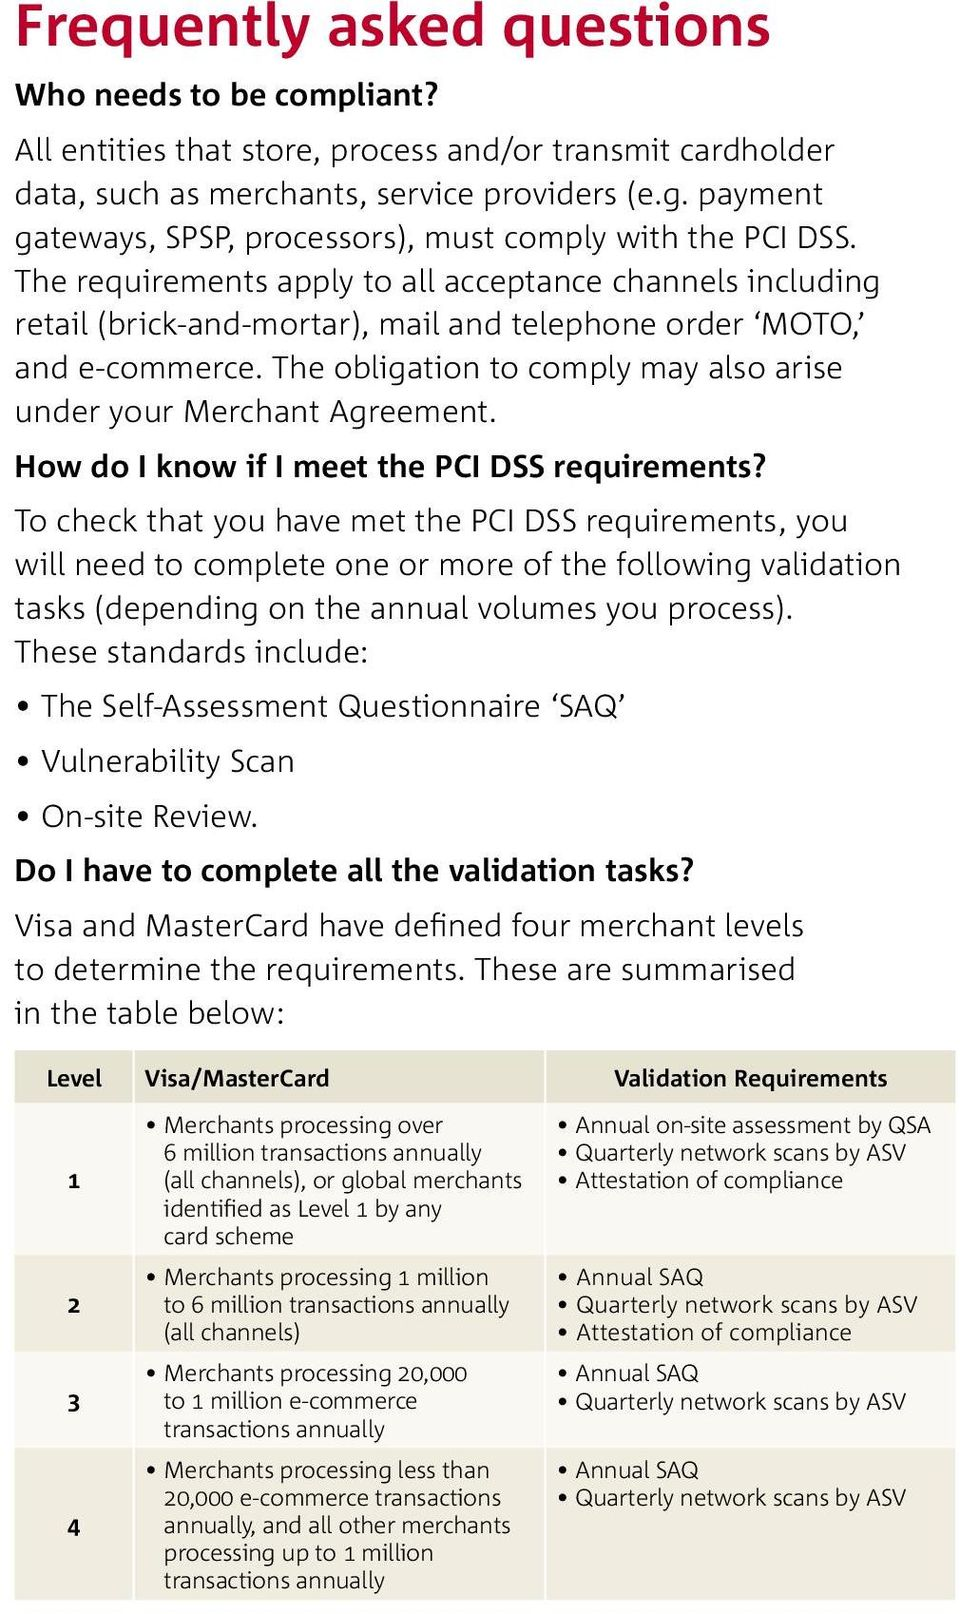 The obligation to comply may also arise under your Merchant Agreement. How do I know if I meet the PCI DSS requirements?